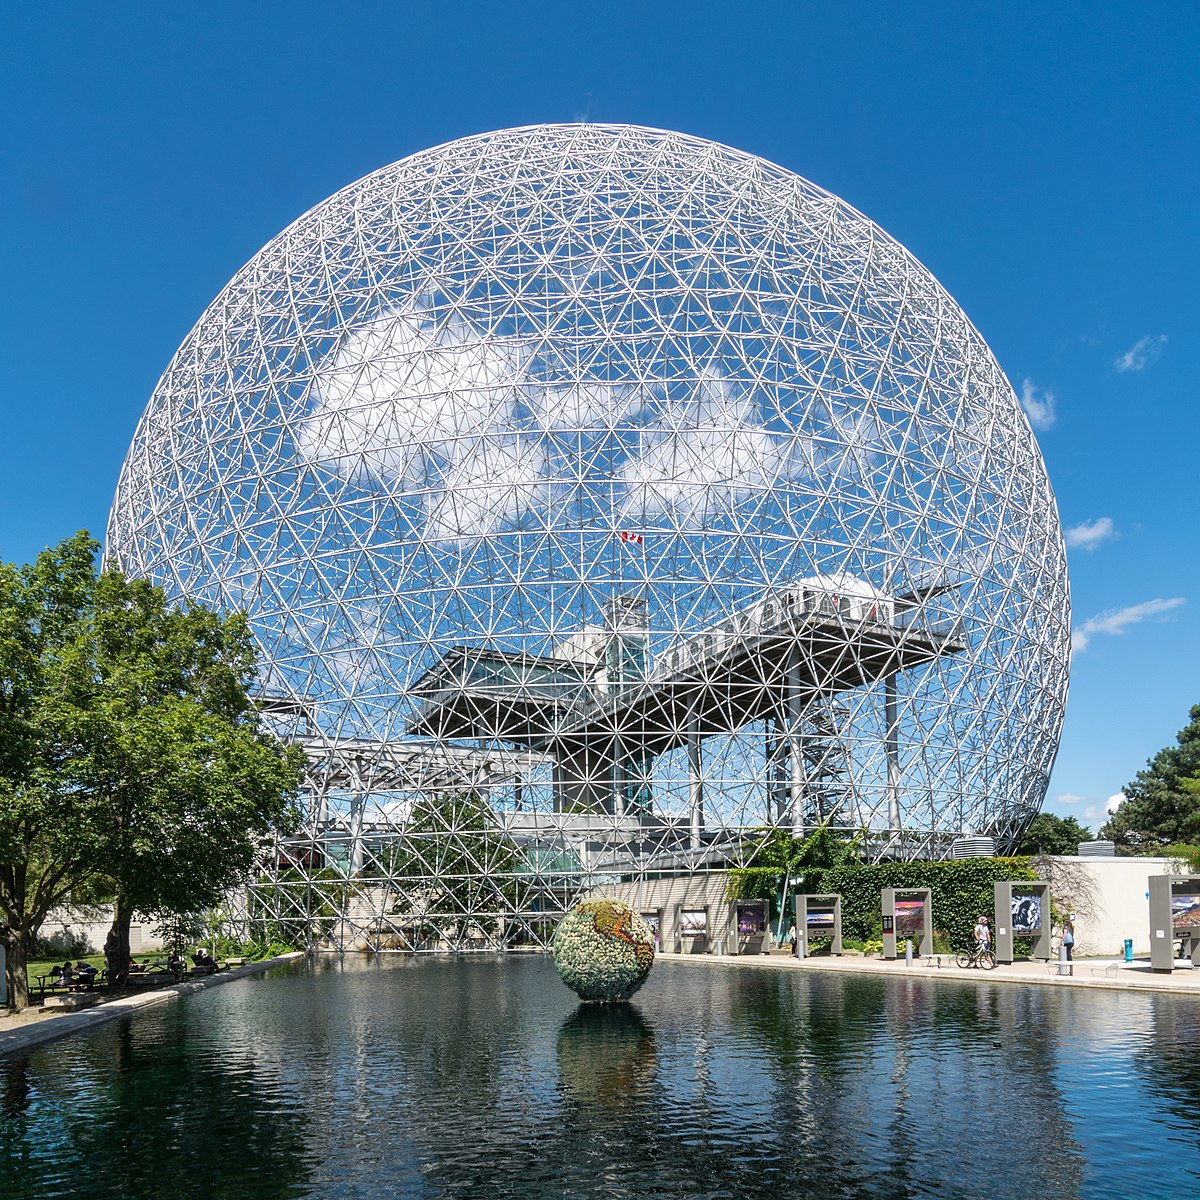 Montreal Parc Jean Drapeau Travel Guide At Wikivoyage